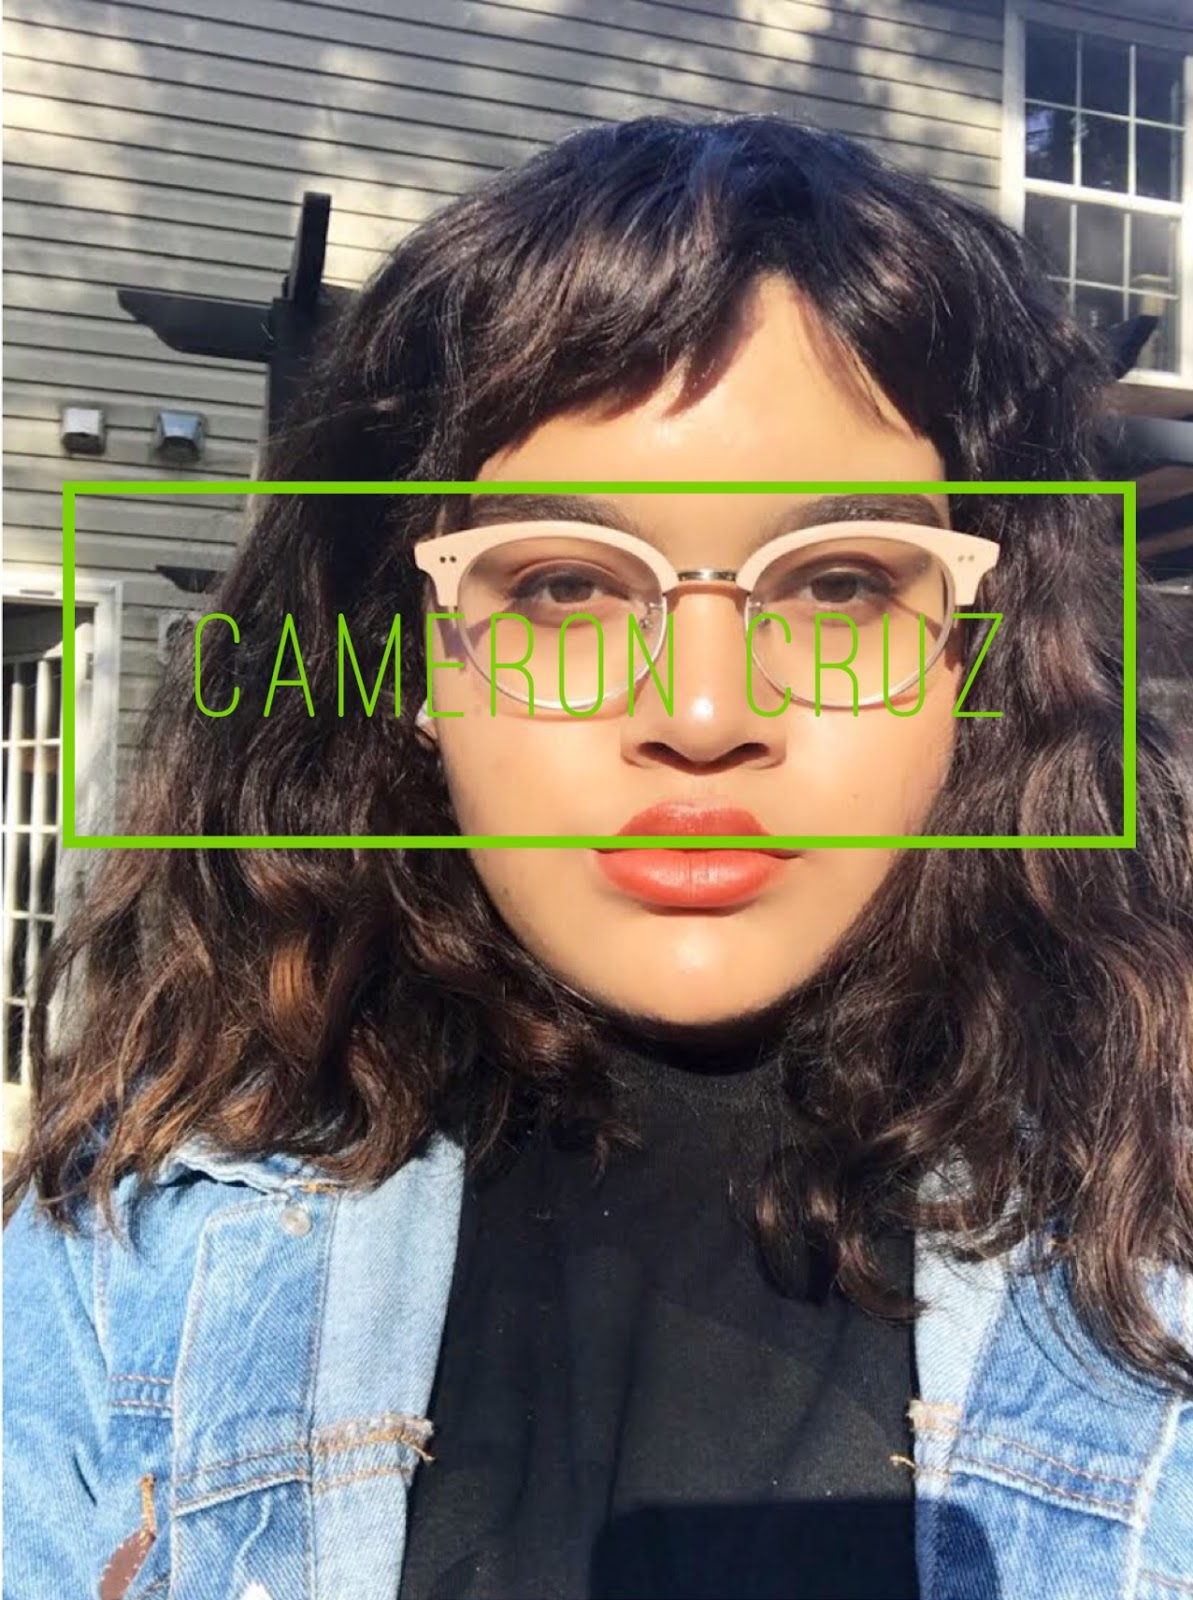 Cameron Cruz An Out There And Weird 17 Year Old Visual Artist Currently Living In Georgia As The Offspring Of A Painter Interior Designer